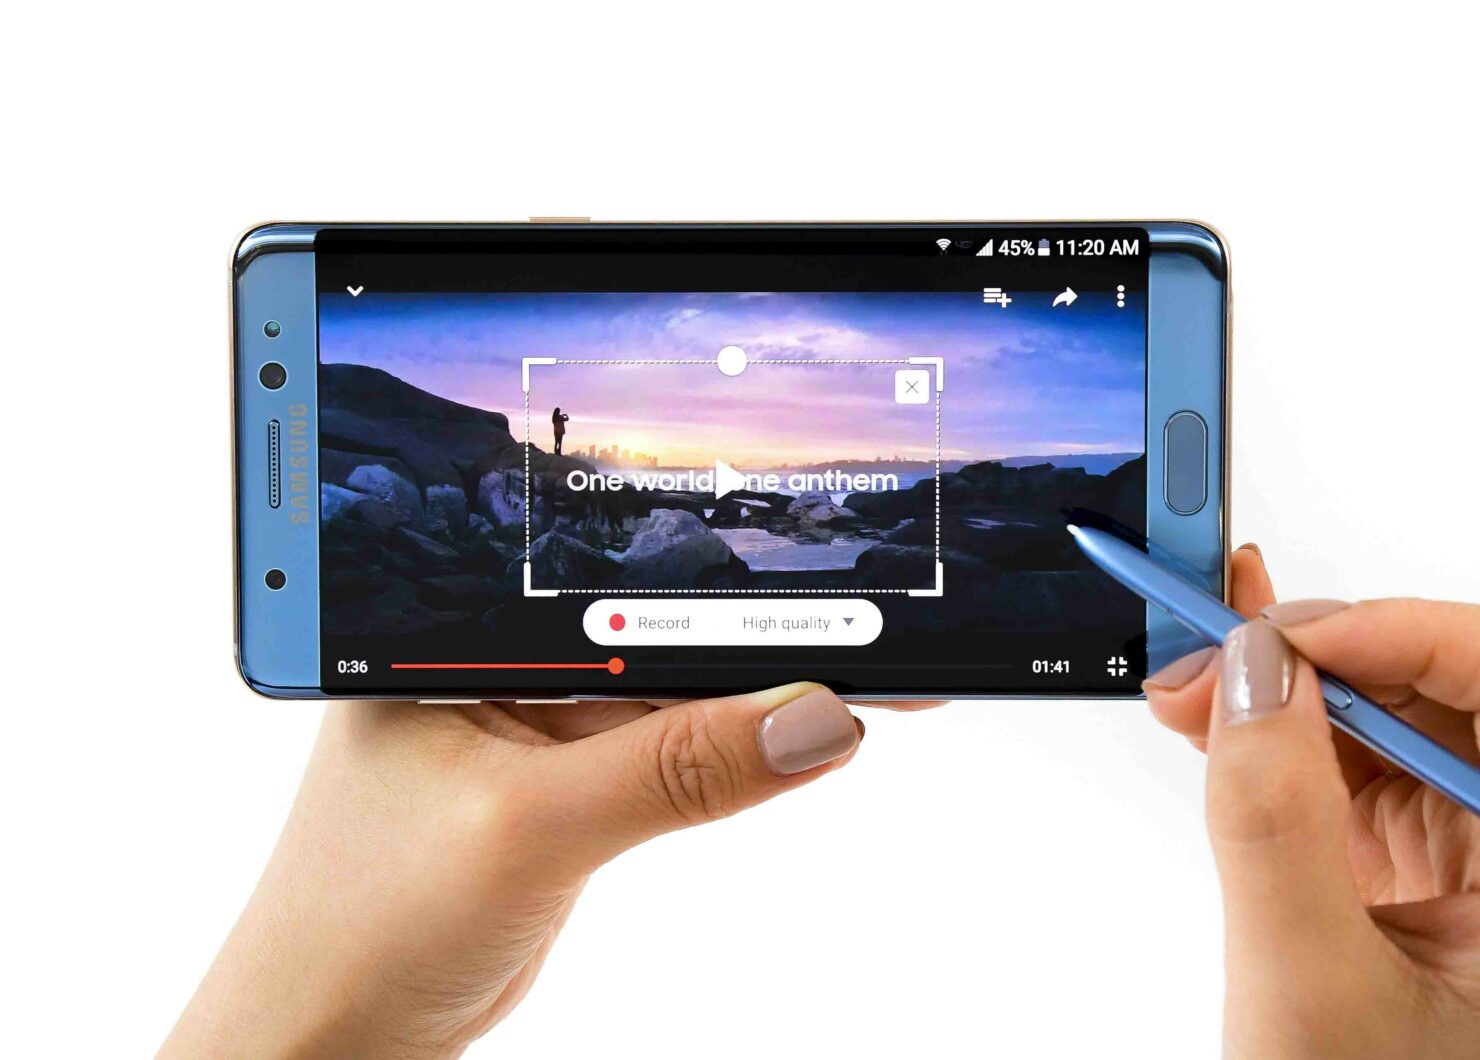 Galaxy Note 7 introductory videos